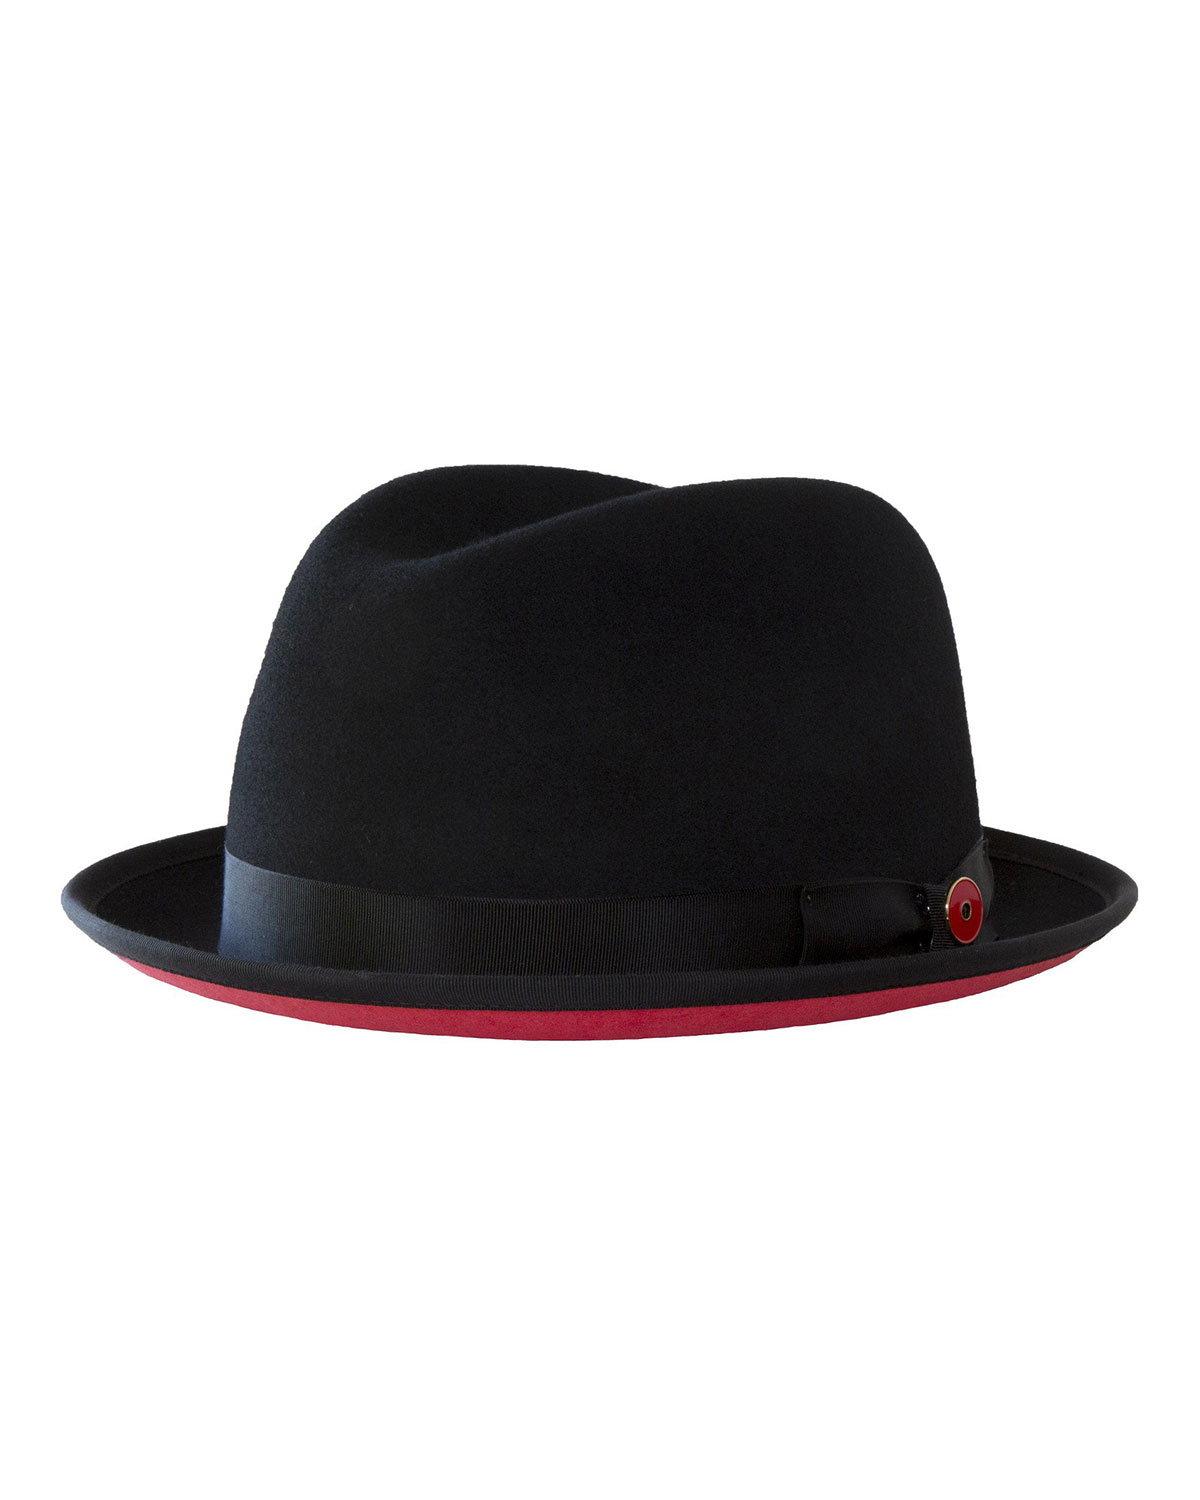 Keith and James Men s Prince Red-Brim Wool Fedora Hat 2f8fd6ab75b9